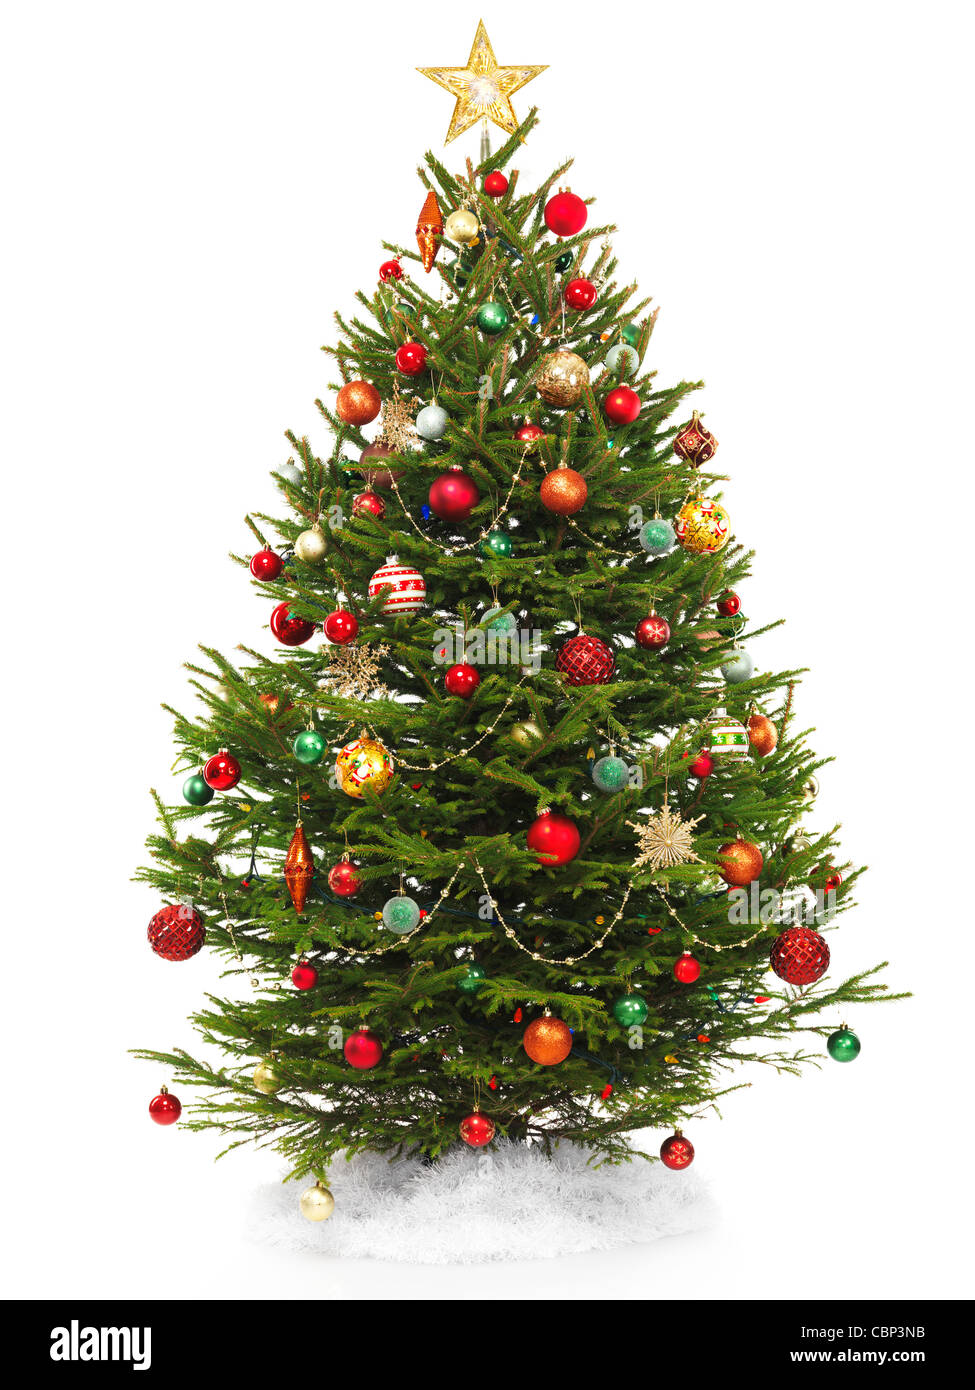 Beautiful Decorated Christmas Tree With A Star Topper Isolated On